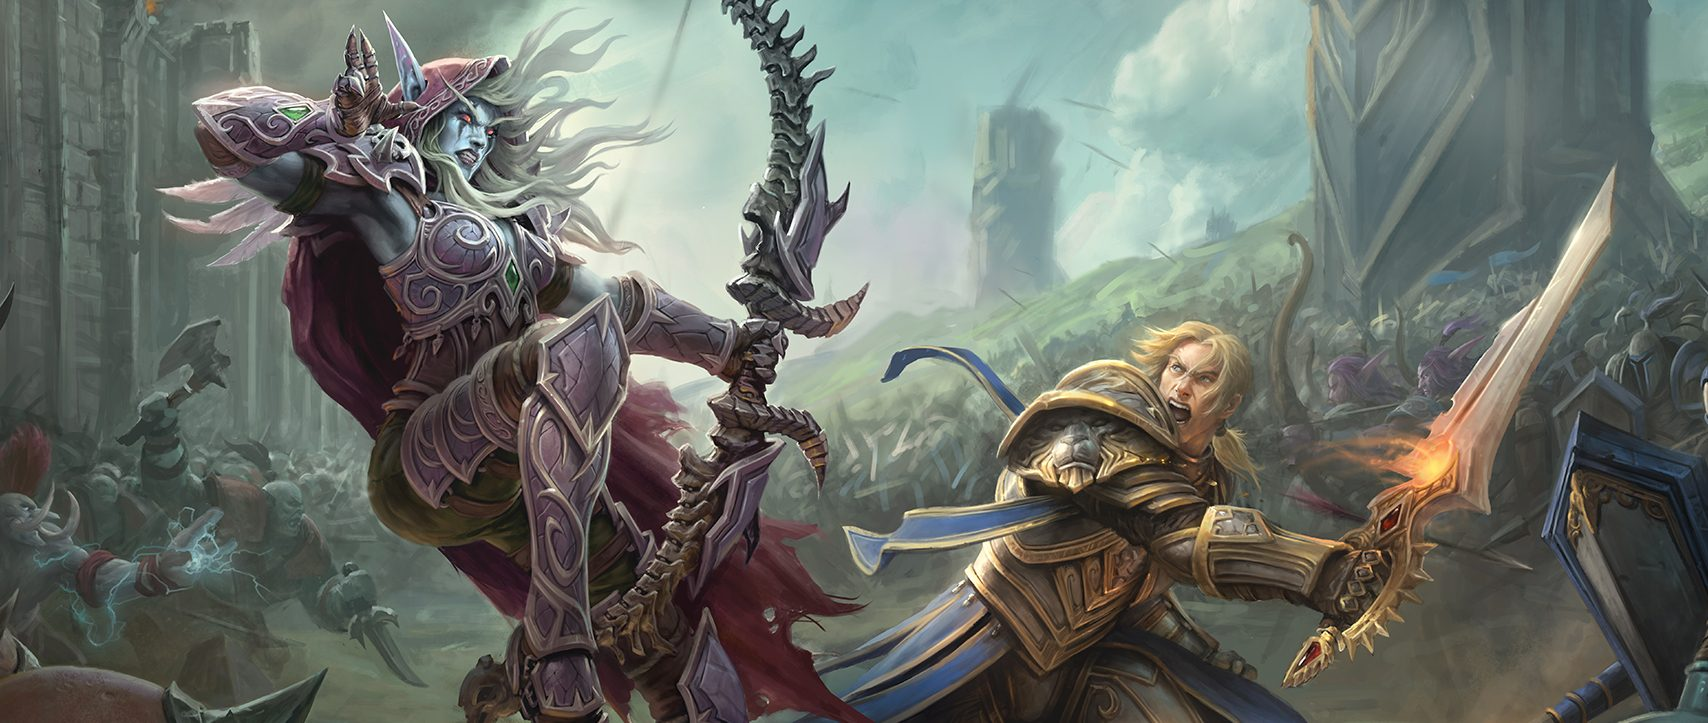 Warcraft Wallpaper Posted By John Thompson